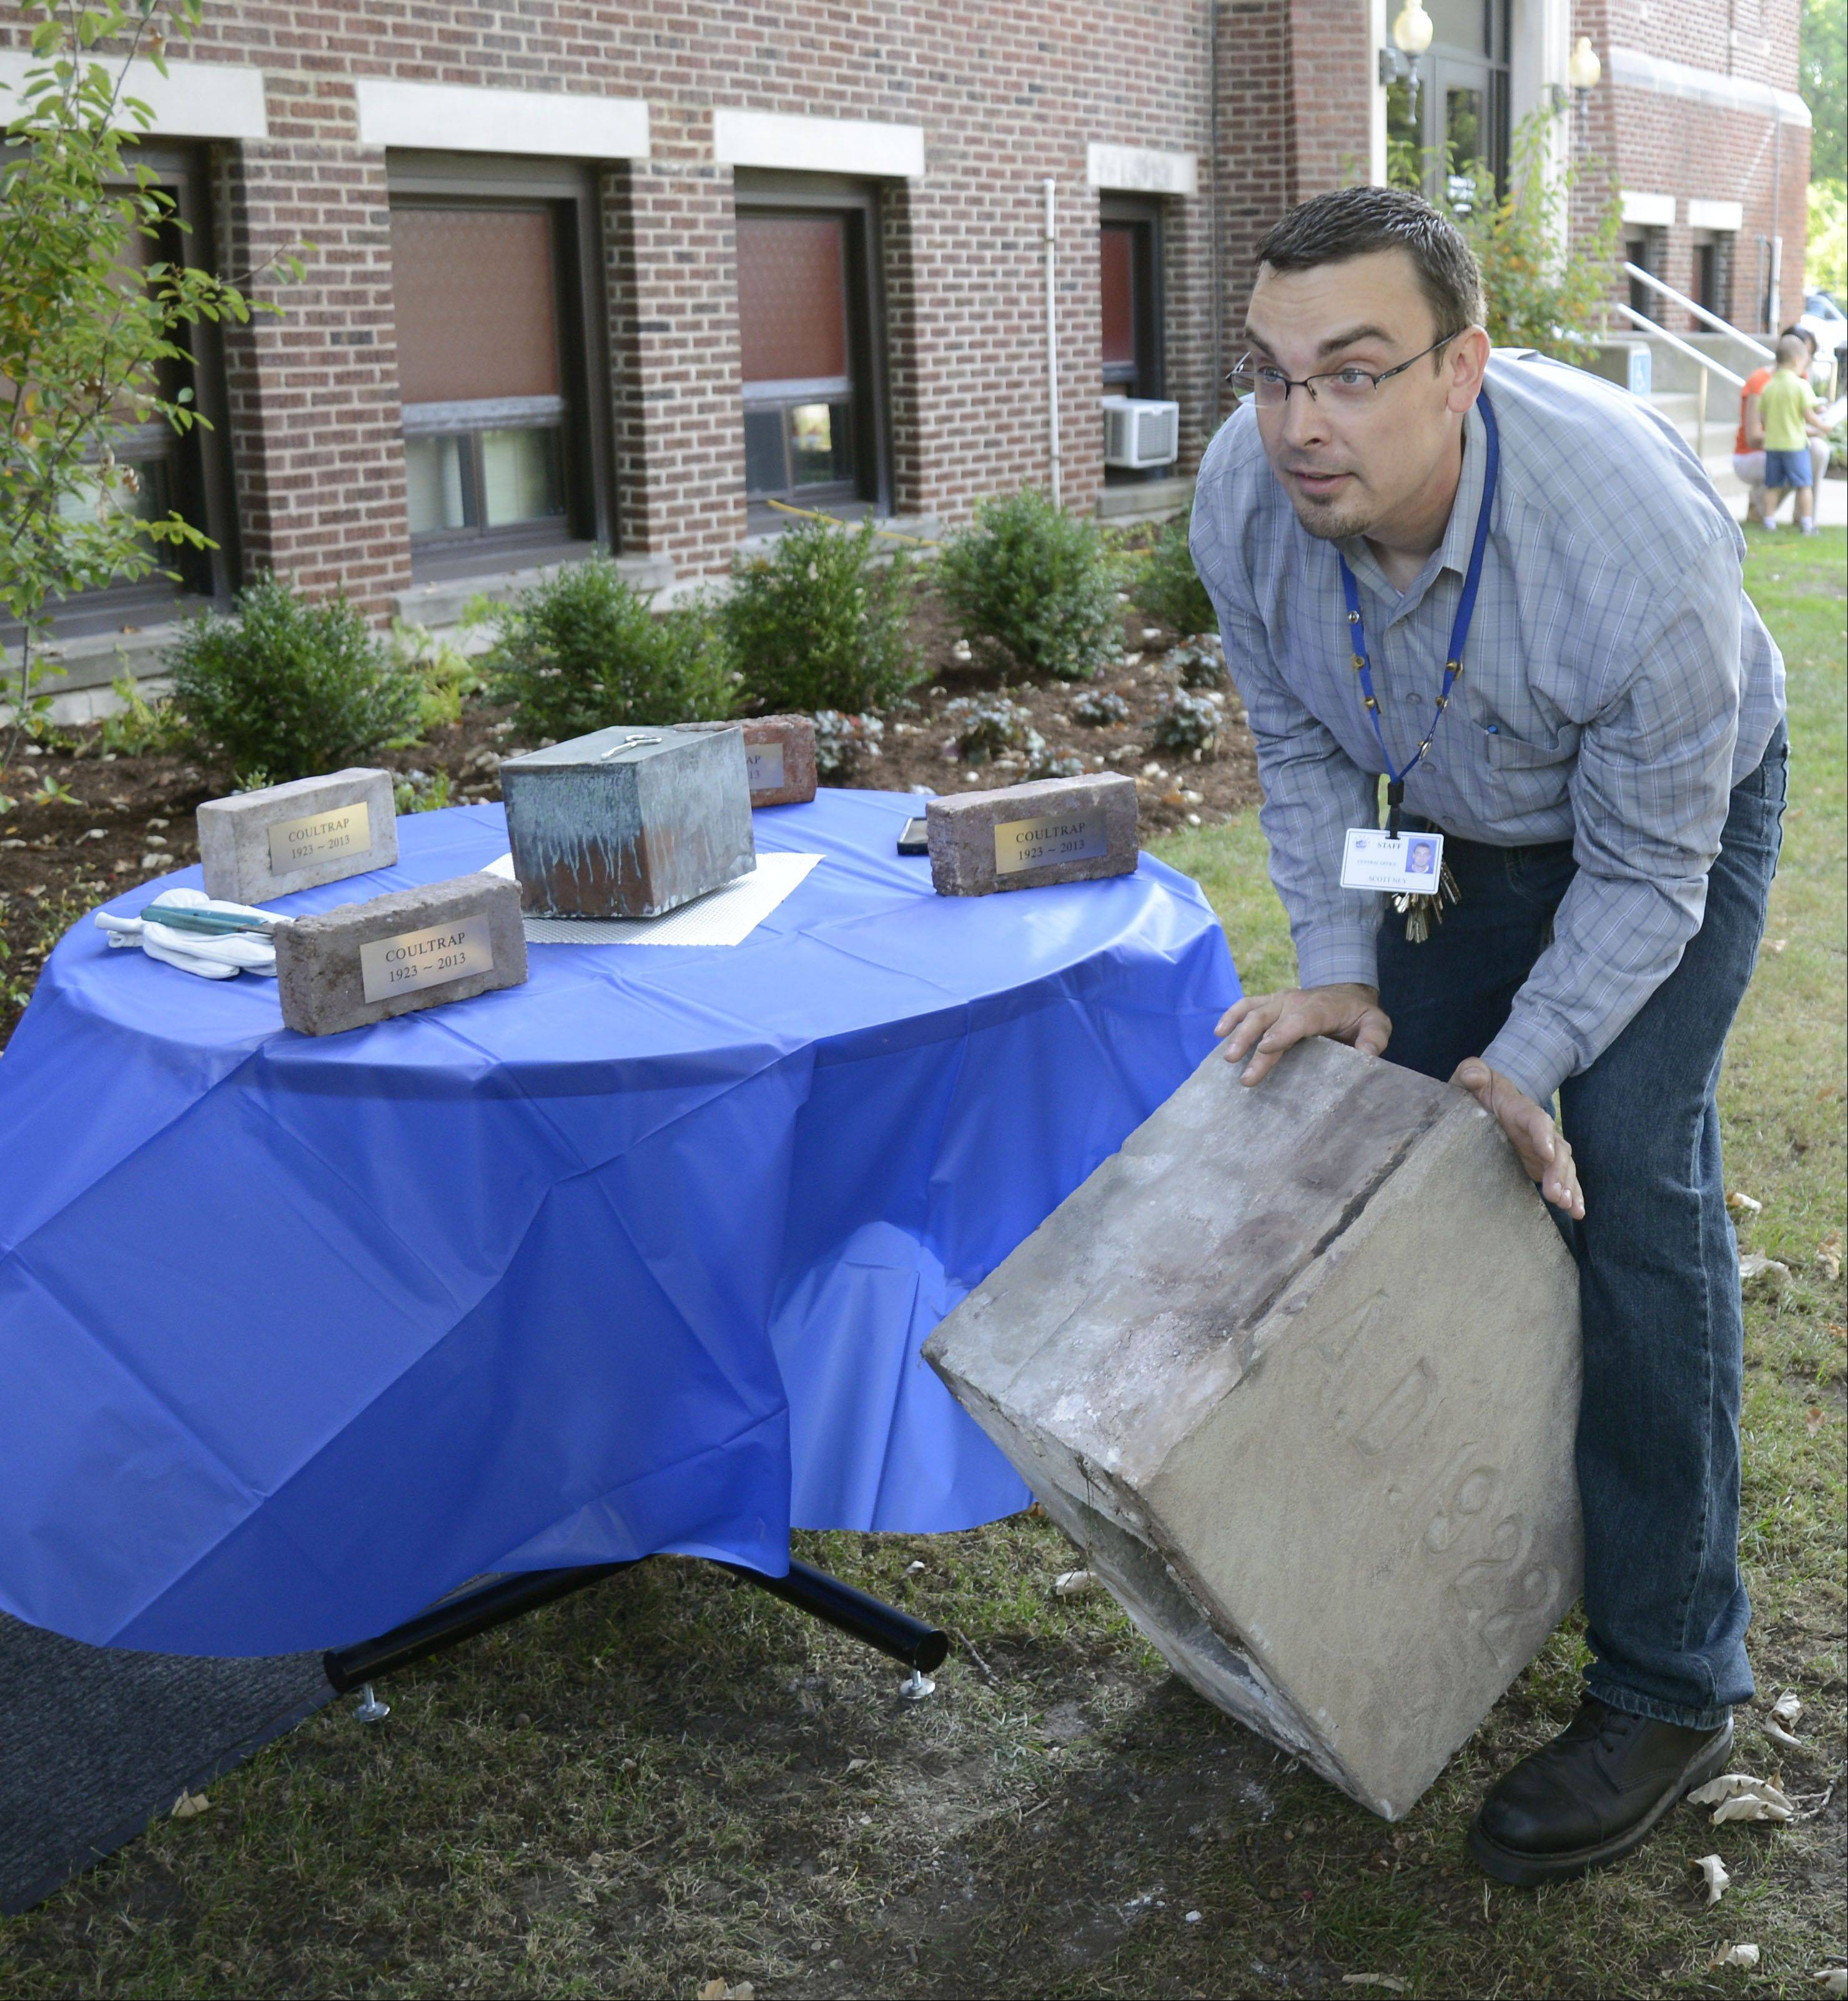 Scott Ney, a part of the Coultrap Educational Services Center administration, tips over the marker stone from the recently razed Coultrap Elementary School to show where the time capsule was stored.